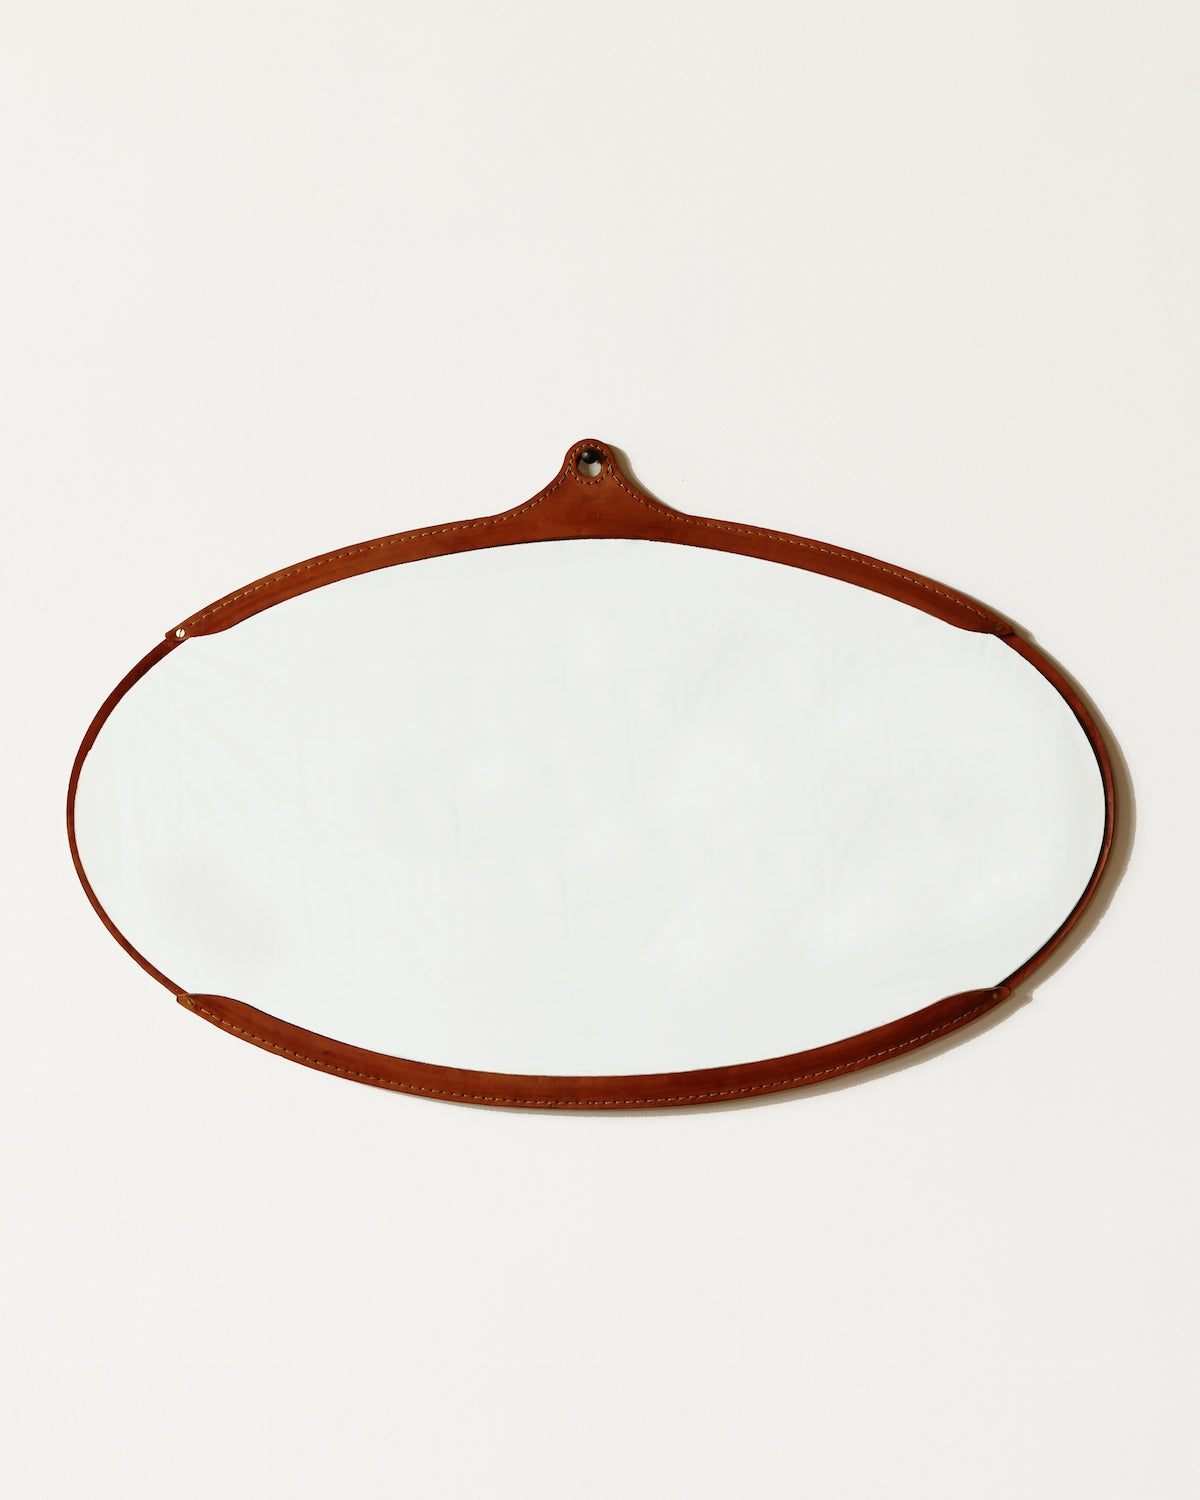 FAIRMOUNT MIRROR - WIDE OVAL